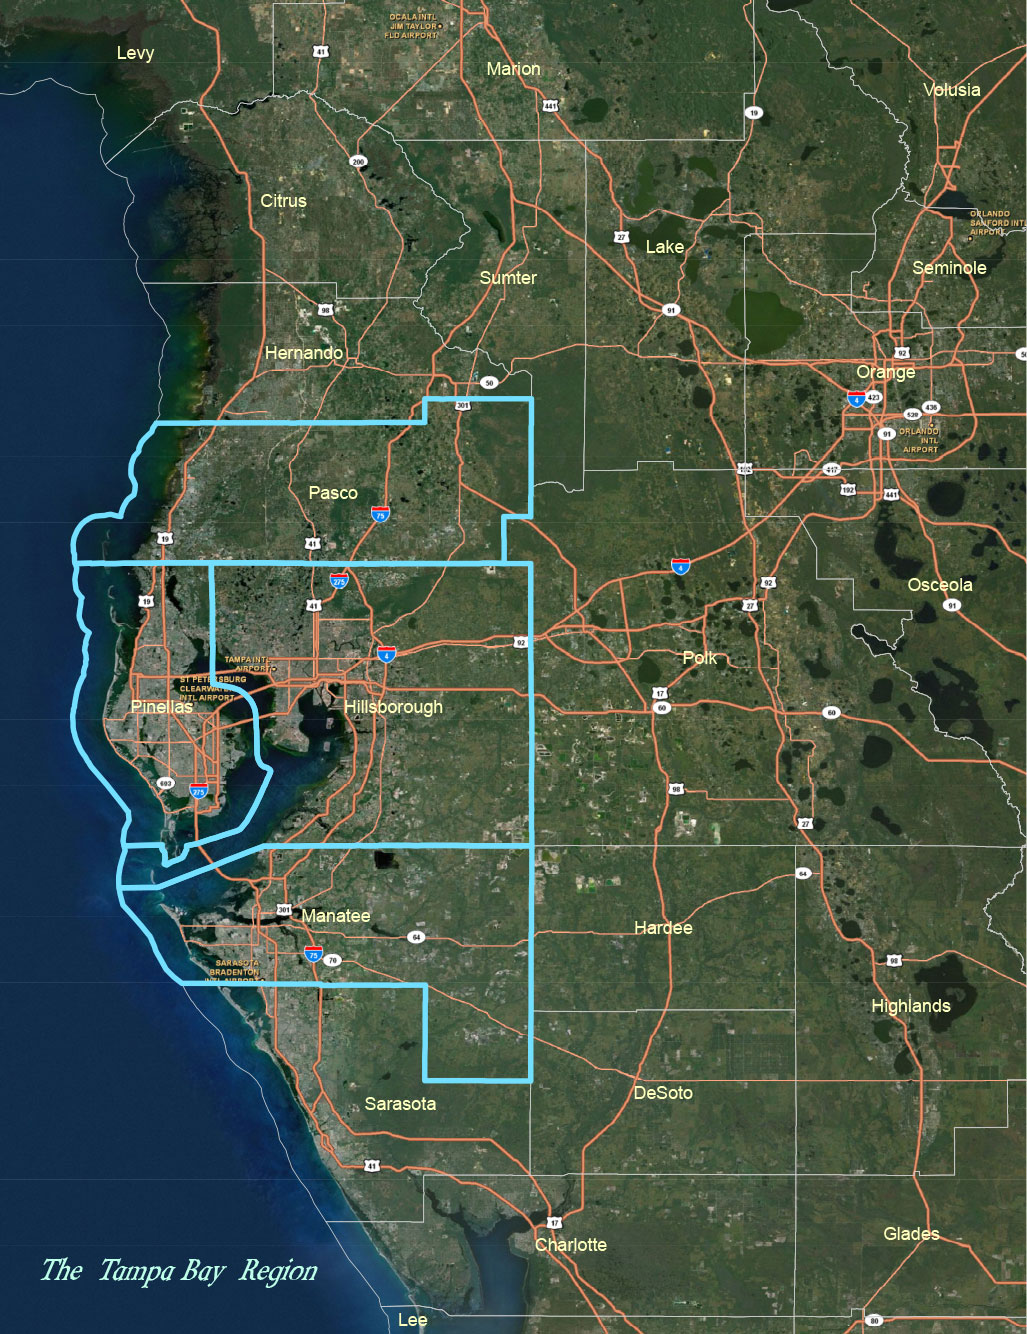 Map Of The Tampa Bay Area Tbrpc Withlacoochee river electric cooperative power outage map ▼. map of the tampa bay area tbrpc